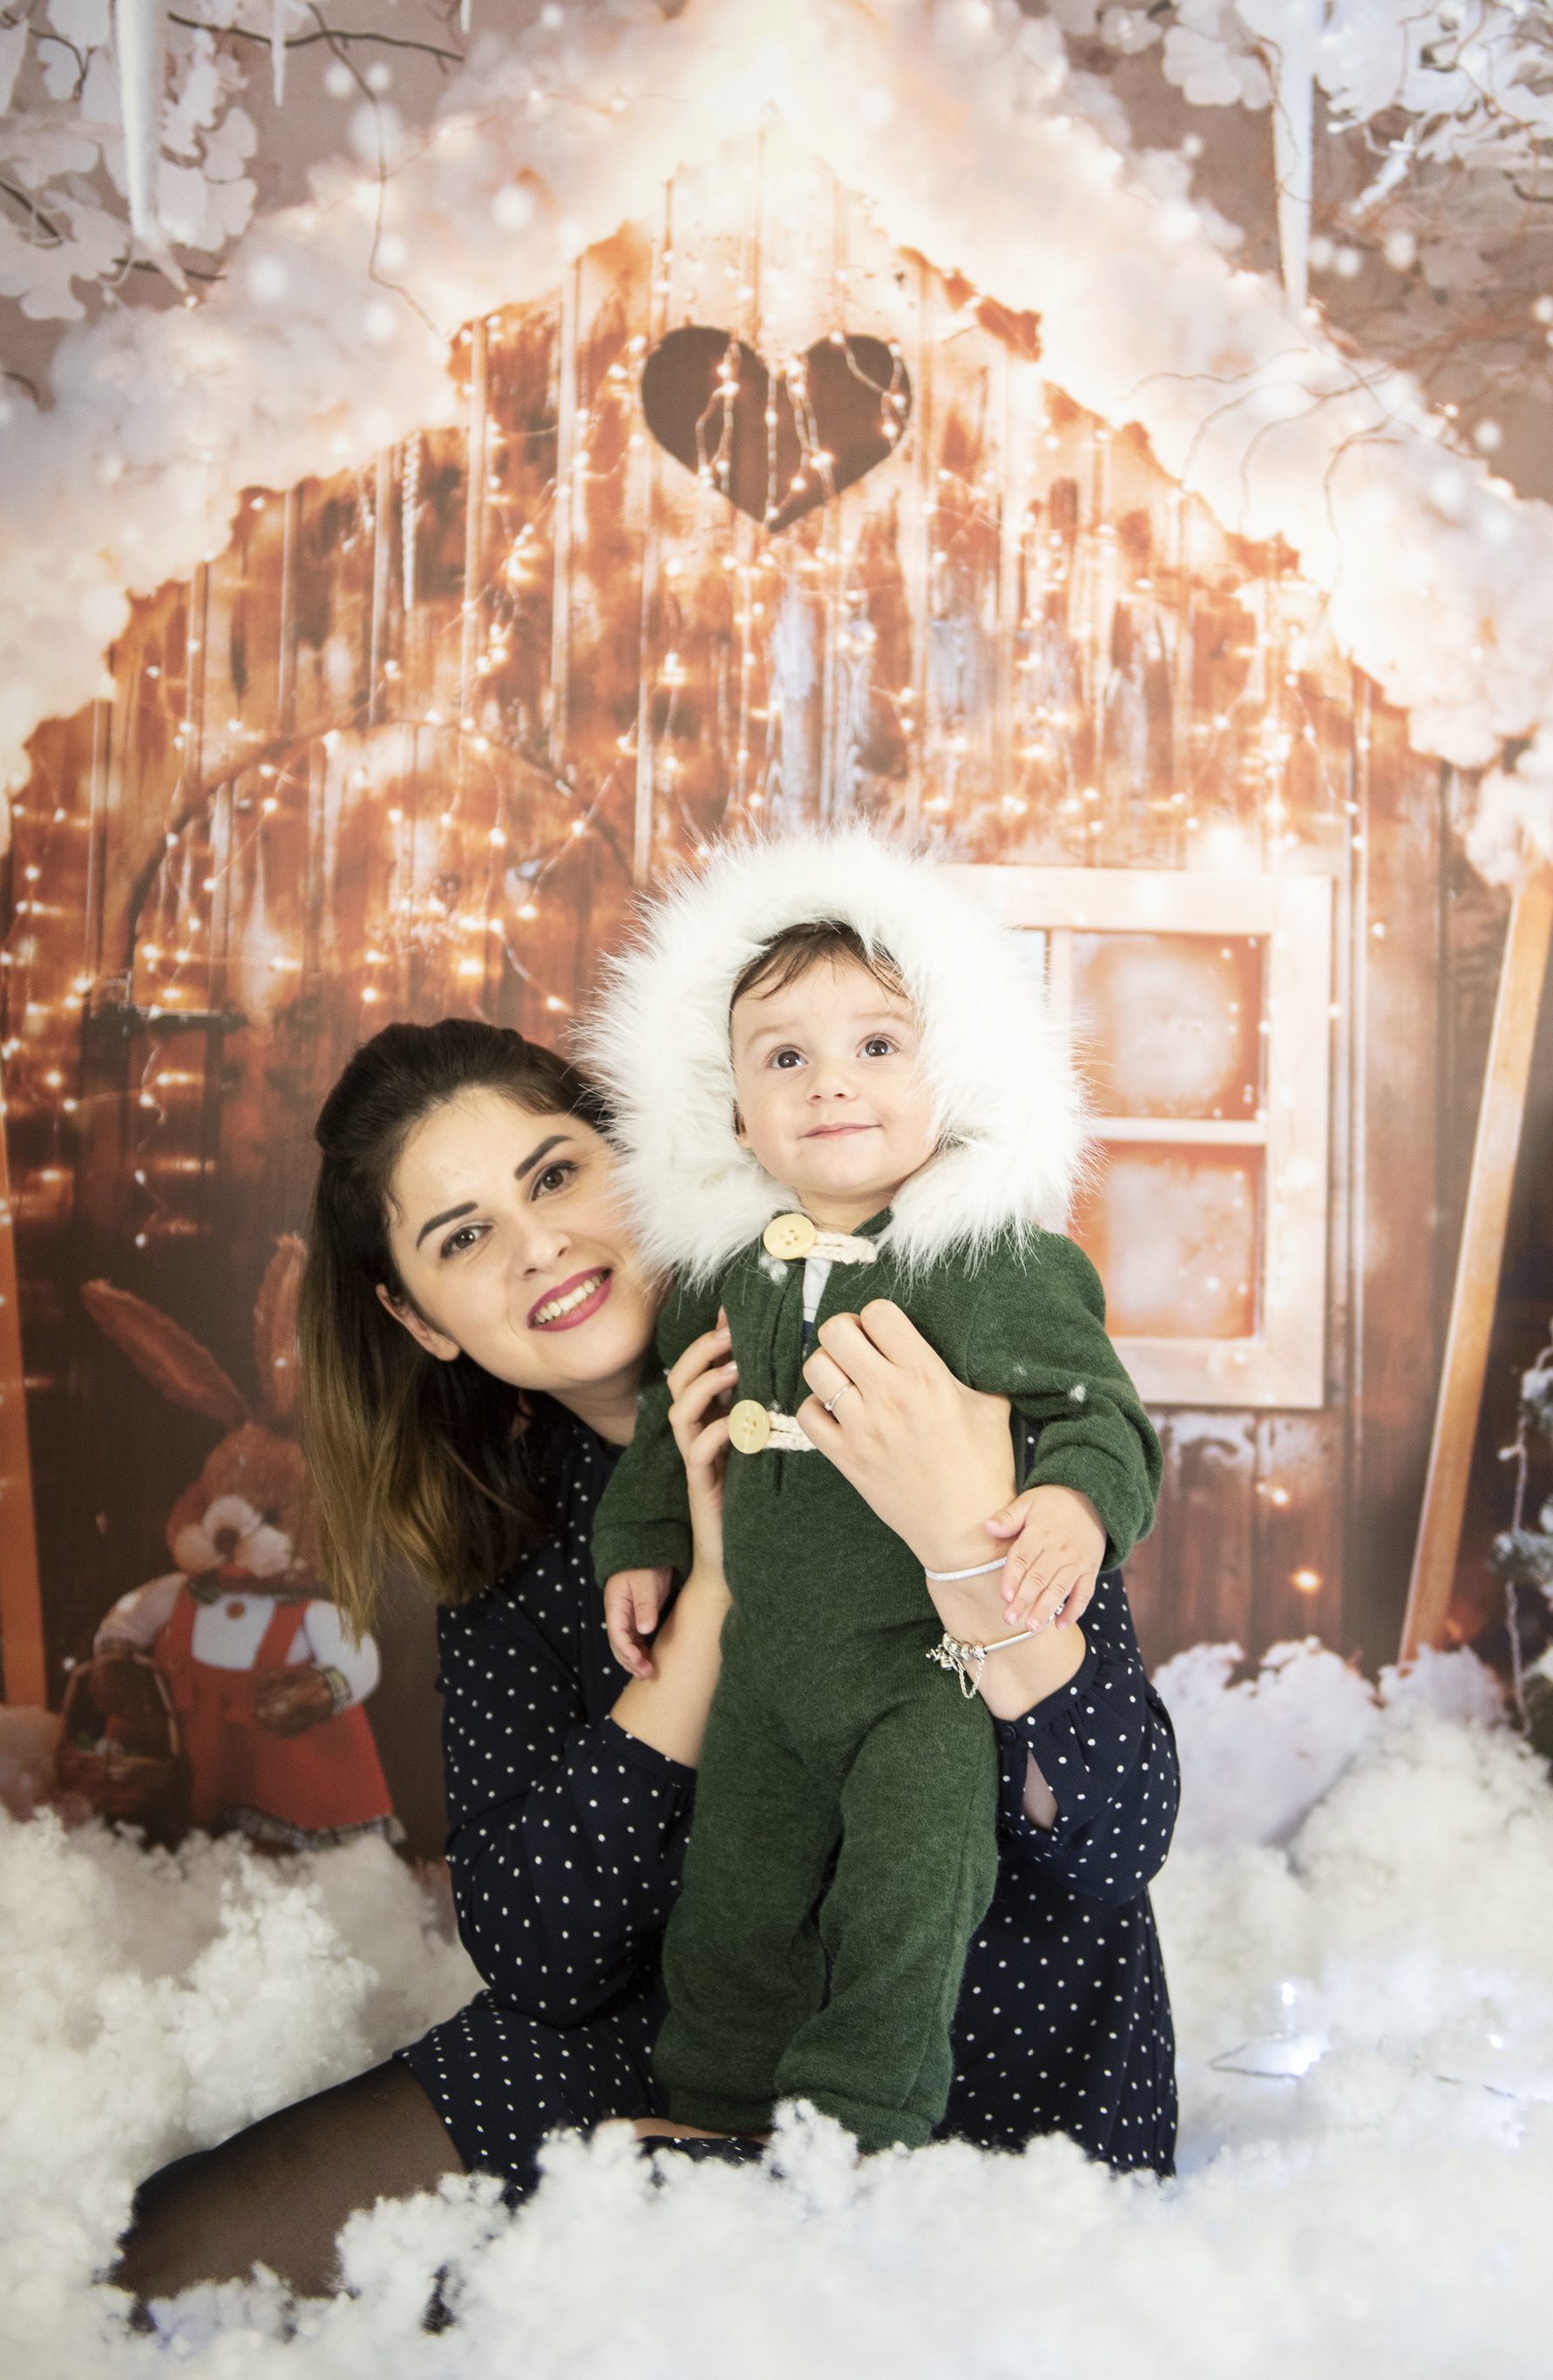 sedinta foto sedinta foto studio sedinta foto craciun indoor photo session christmas photo sesion winter coming happy family